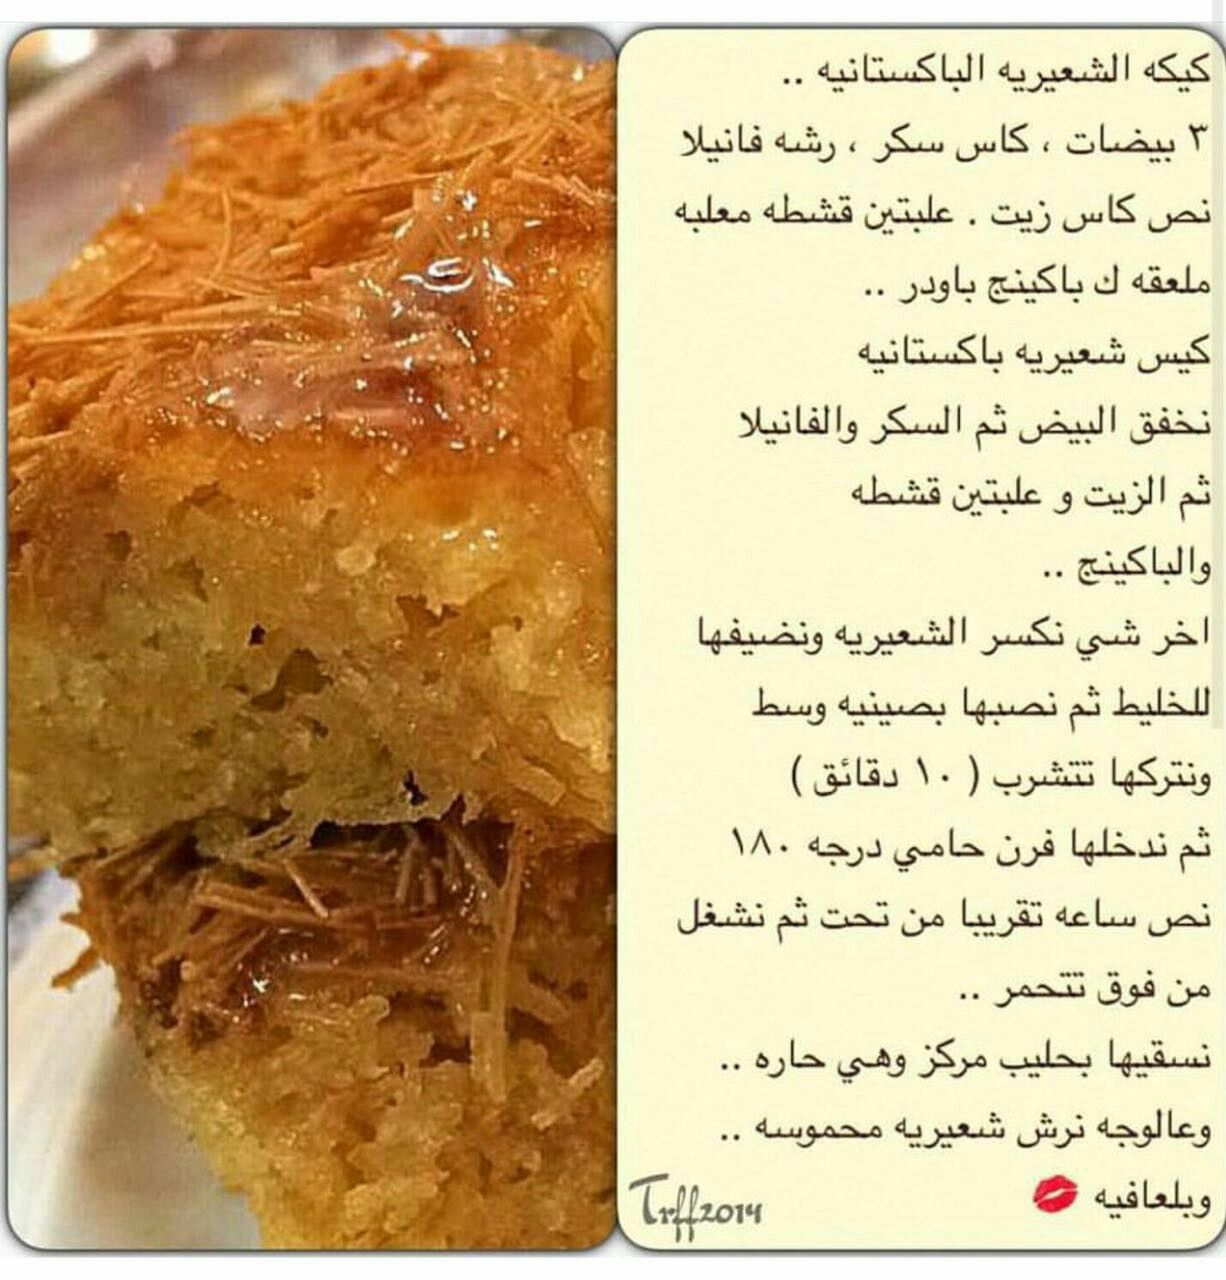 Pin By ساره اليامي On اكلات لذيذة Arabic Sweets Cooking Recipes Food Dishes